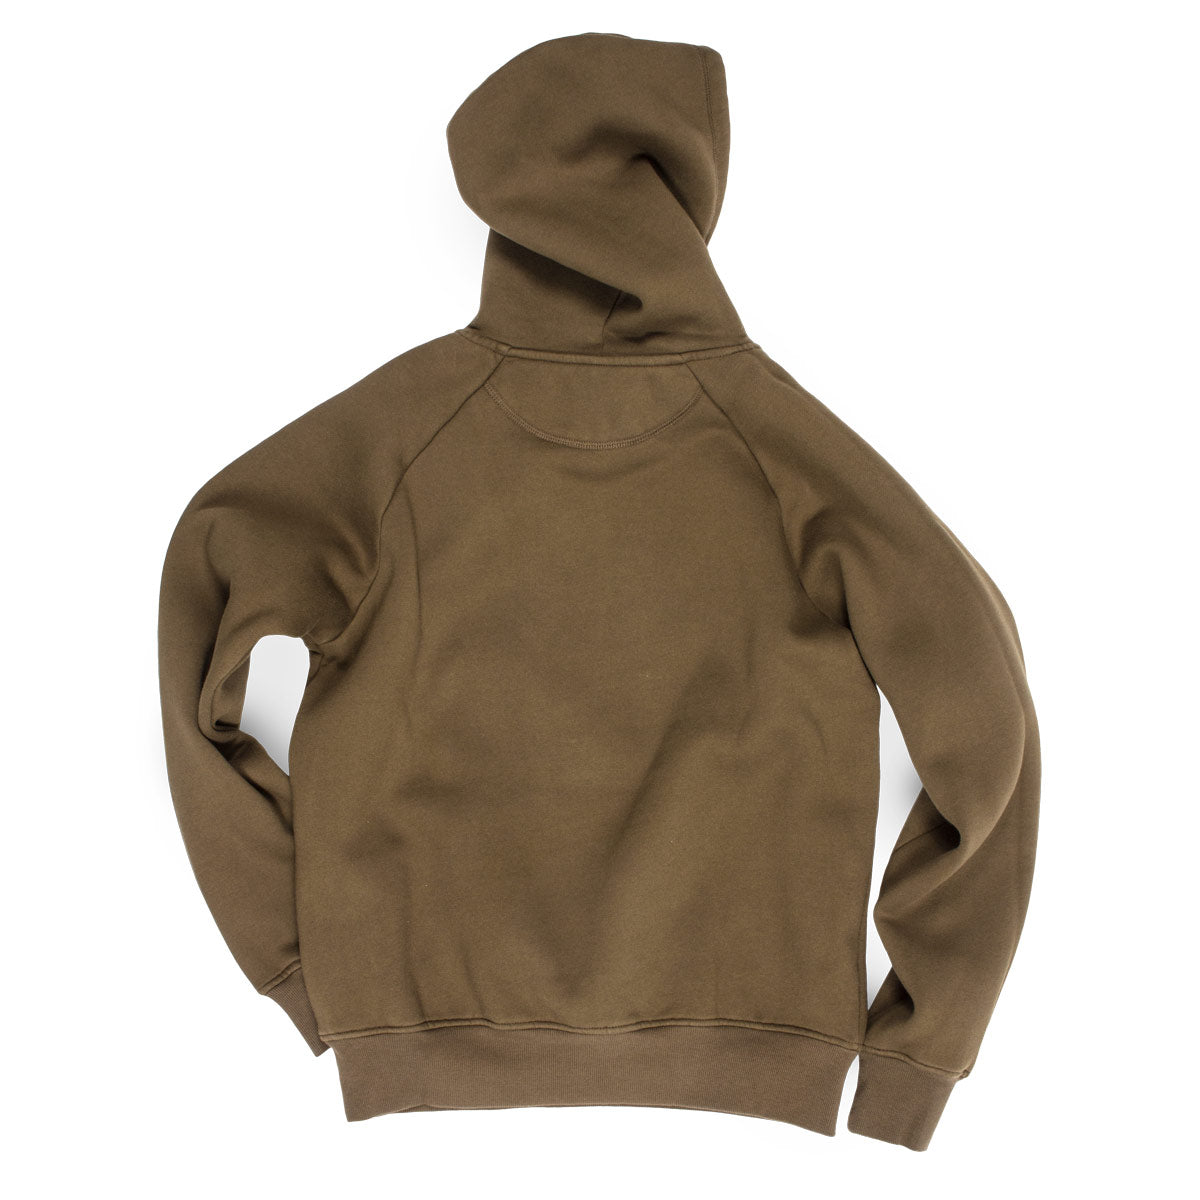 The Hip Hop Shop classic logo military green hoodie rear